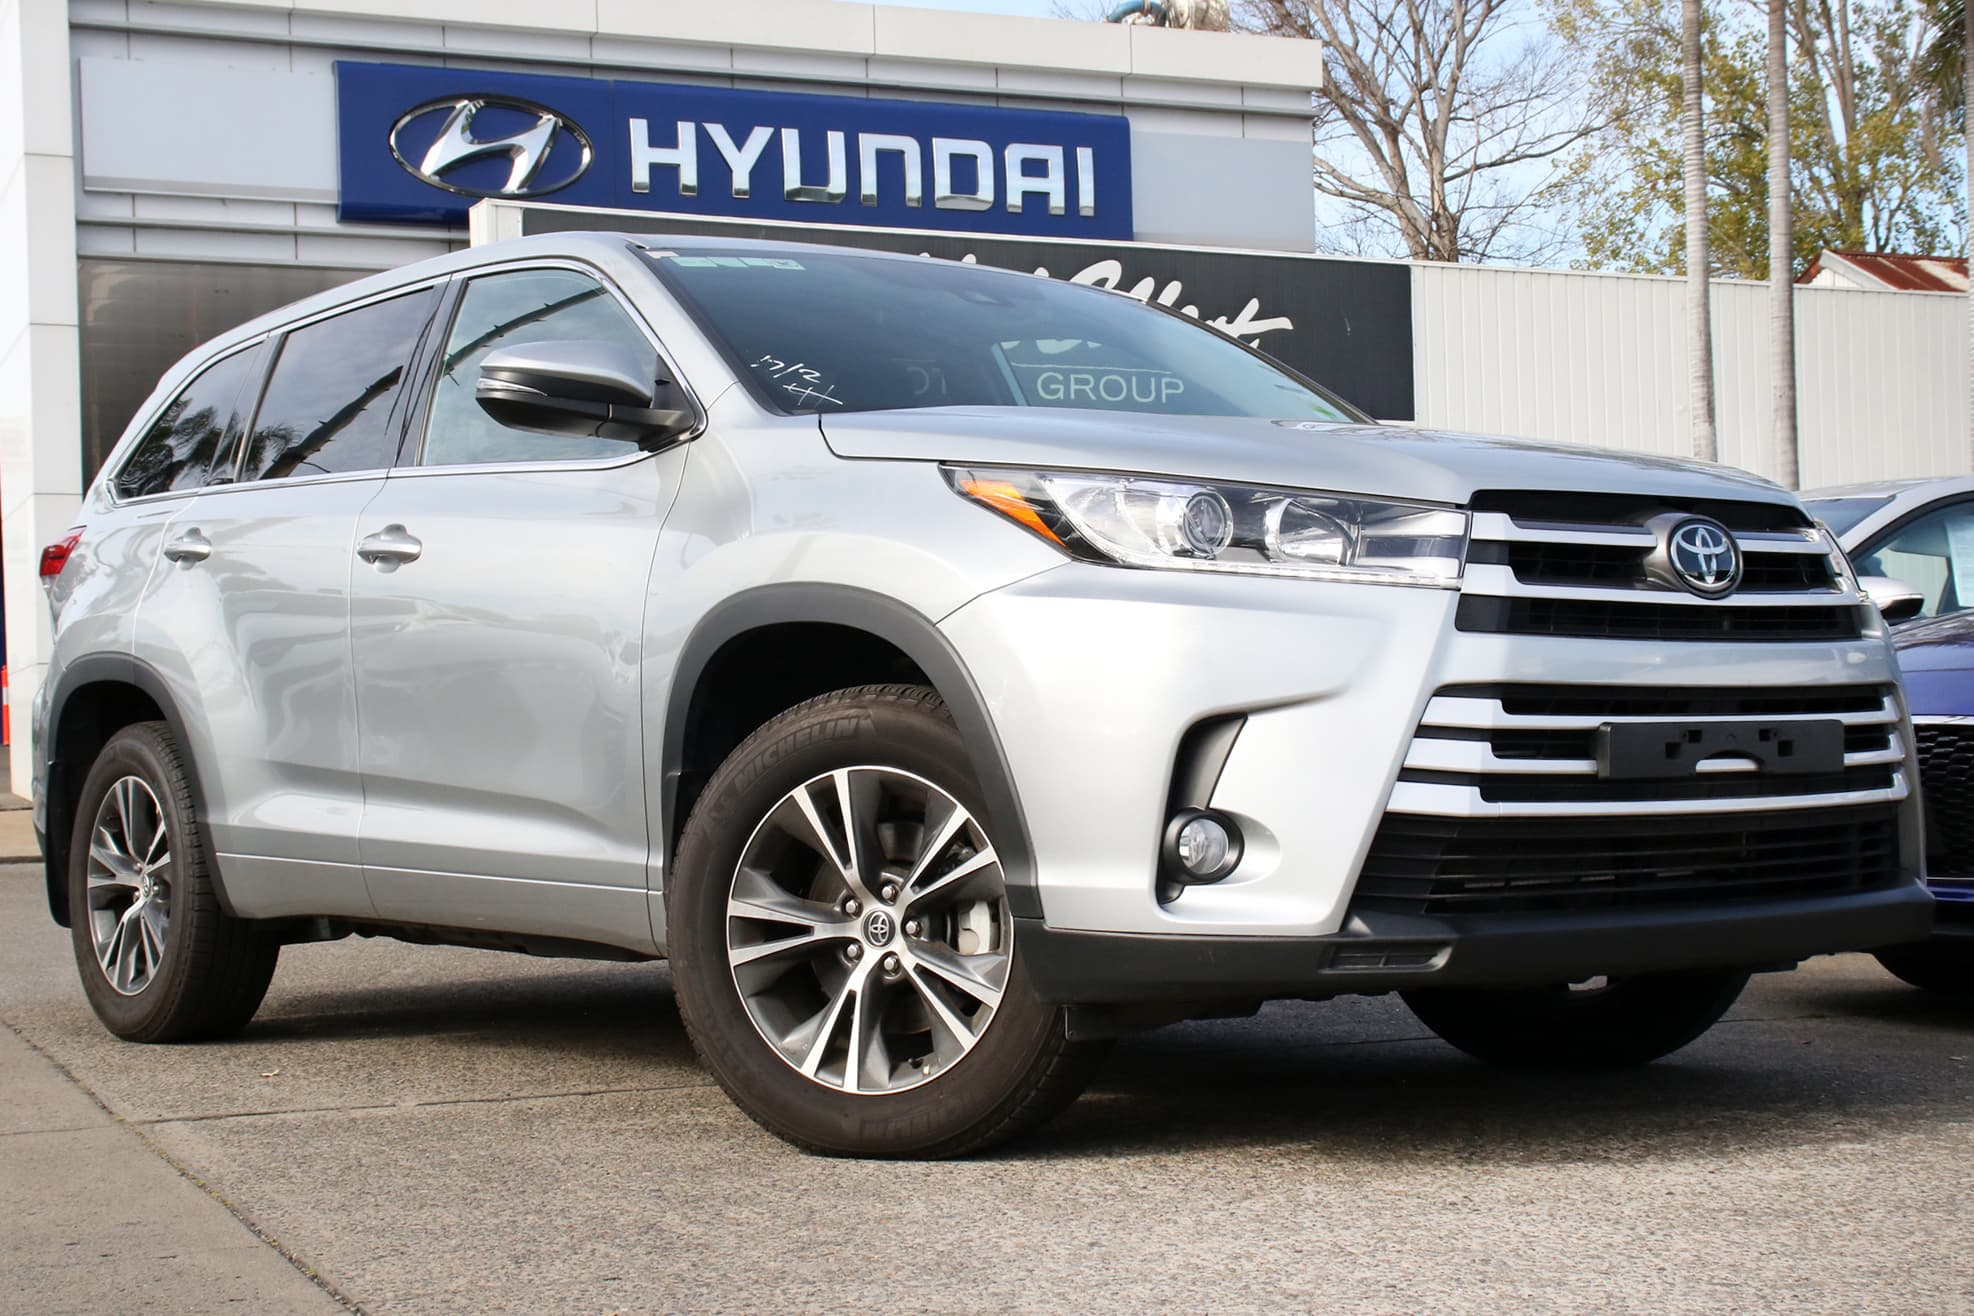 2018 Toyota Kluger GX Auto AWD - image 1